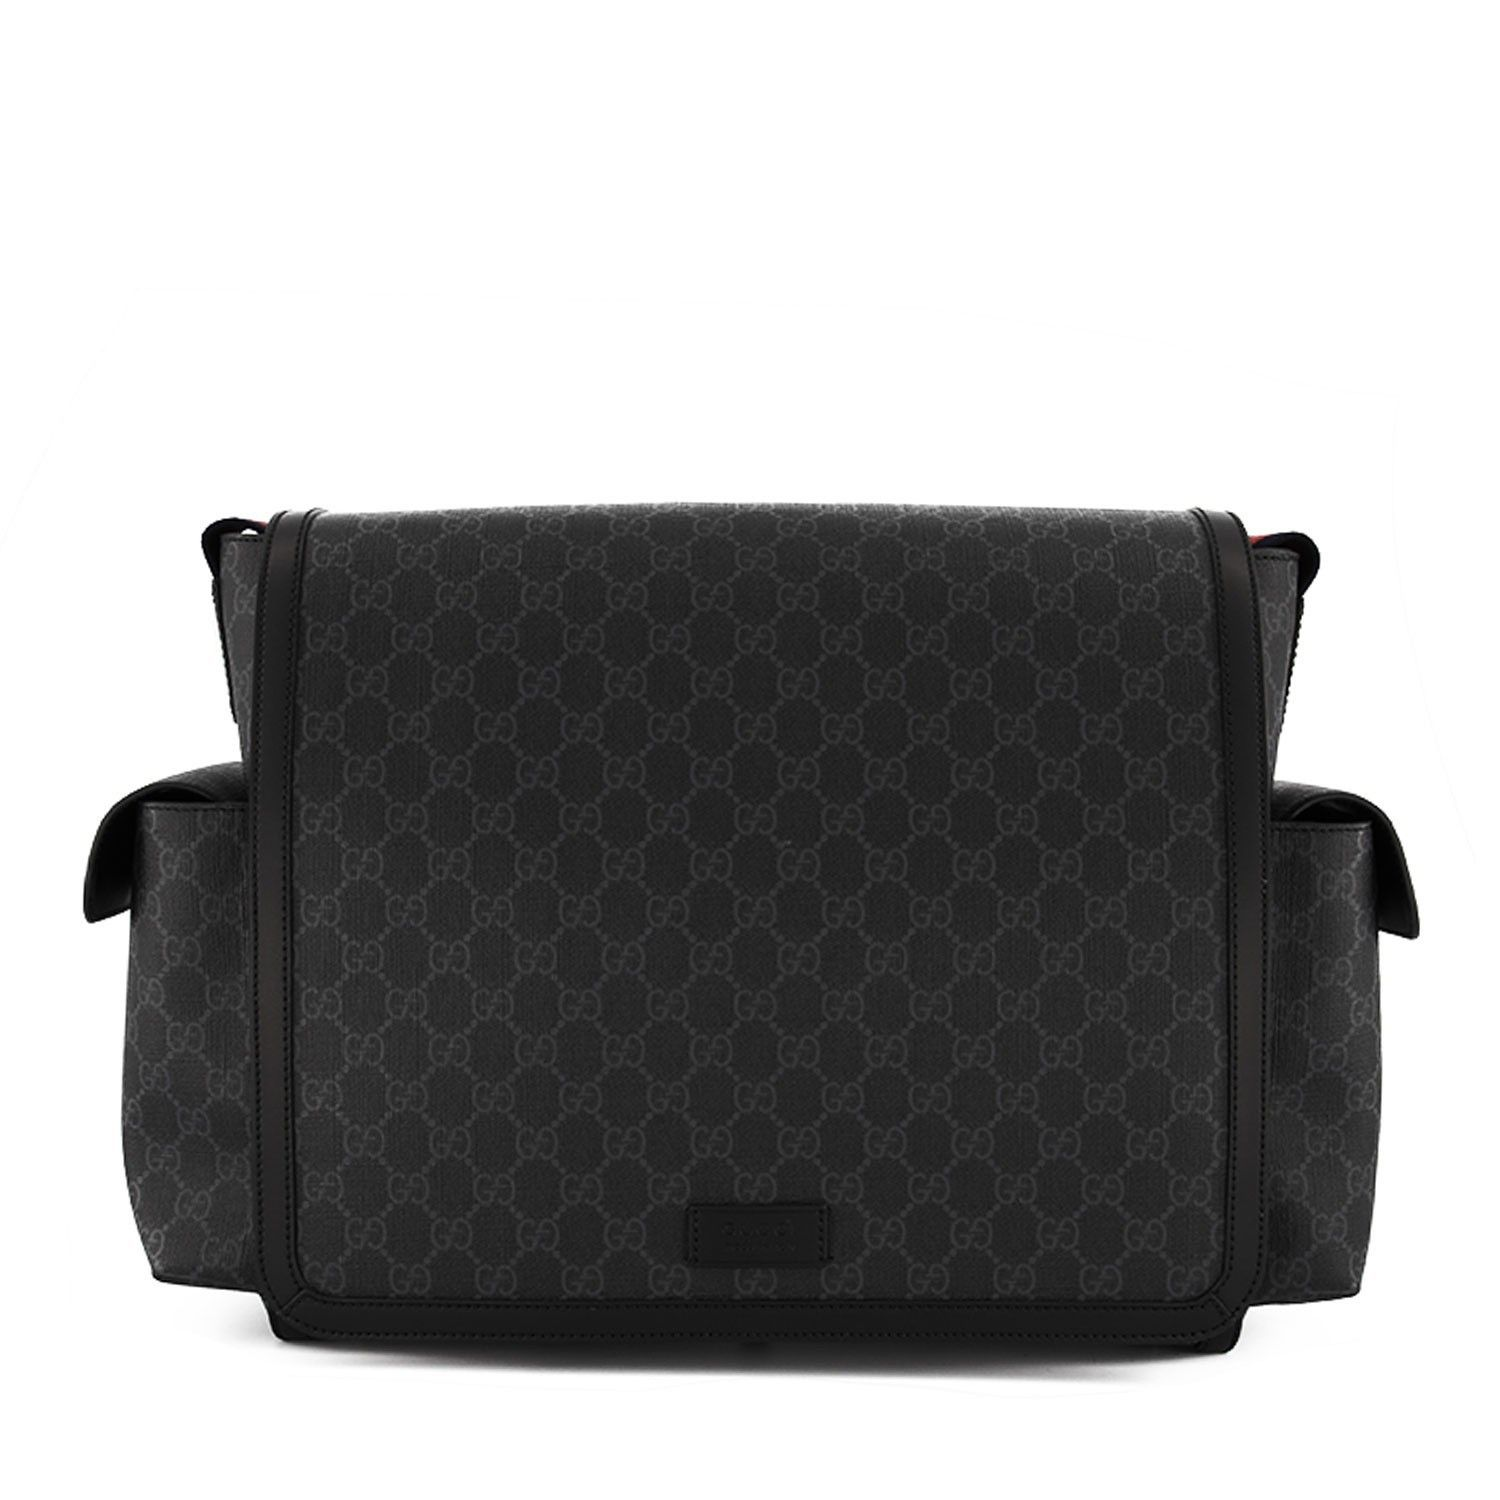 Picture of Gucci 495909 diaper bags black